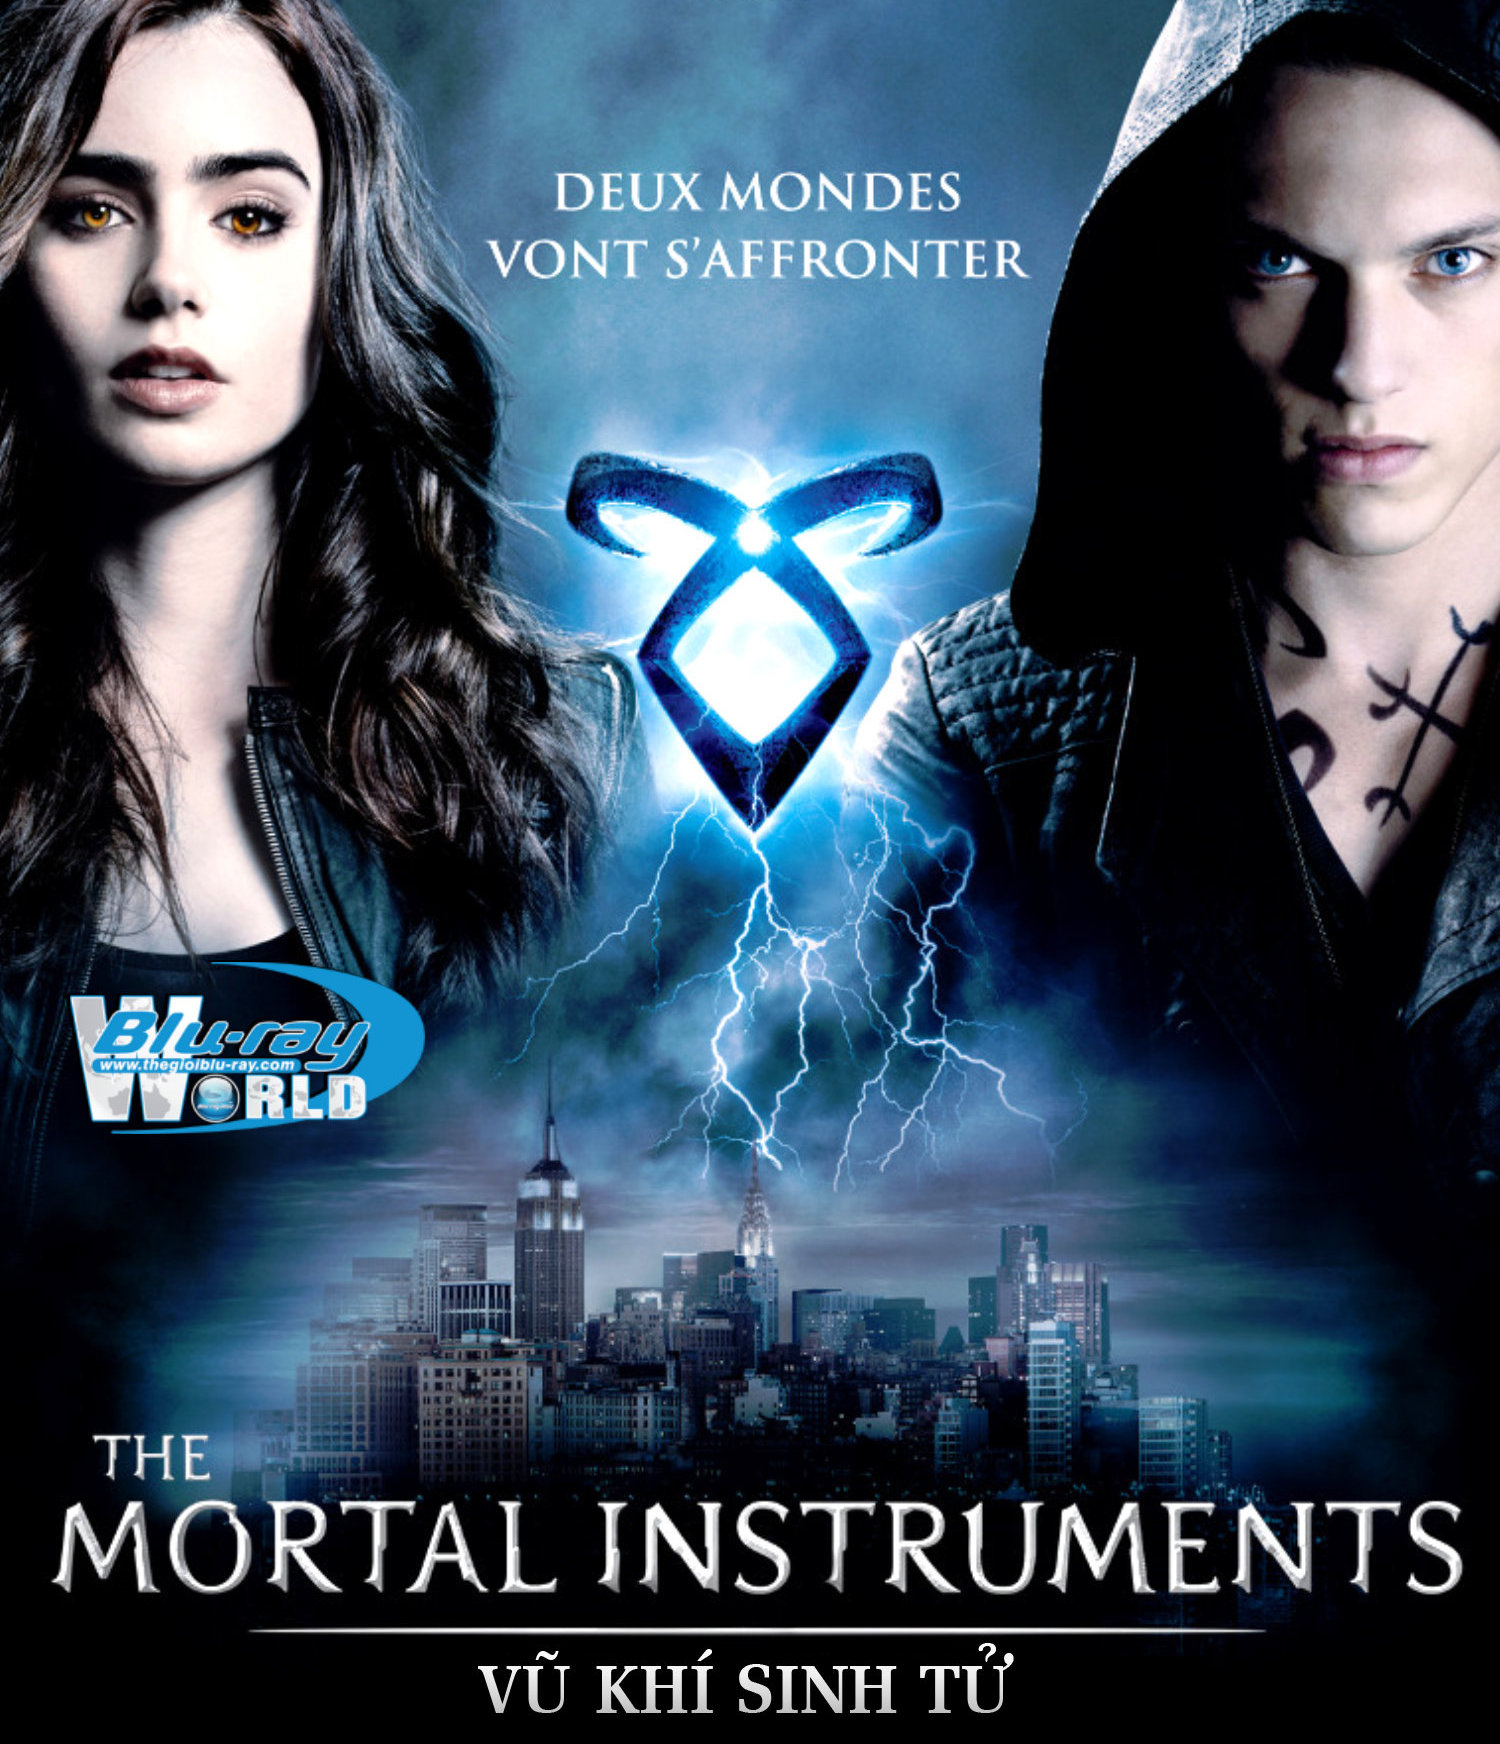 B1459. The Mortal Instruments City Of Bones (no cinavia) - VŨ KHÍ SINH TỬ USA 2D 25G (DTS-HD MA 5.1) nocinavia